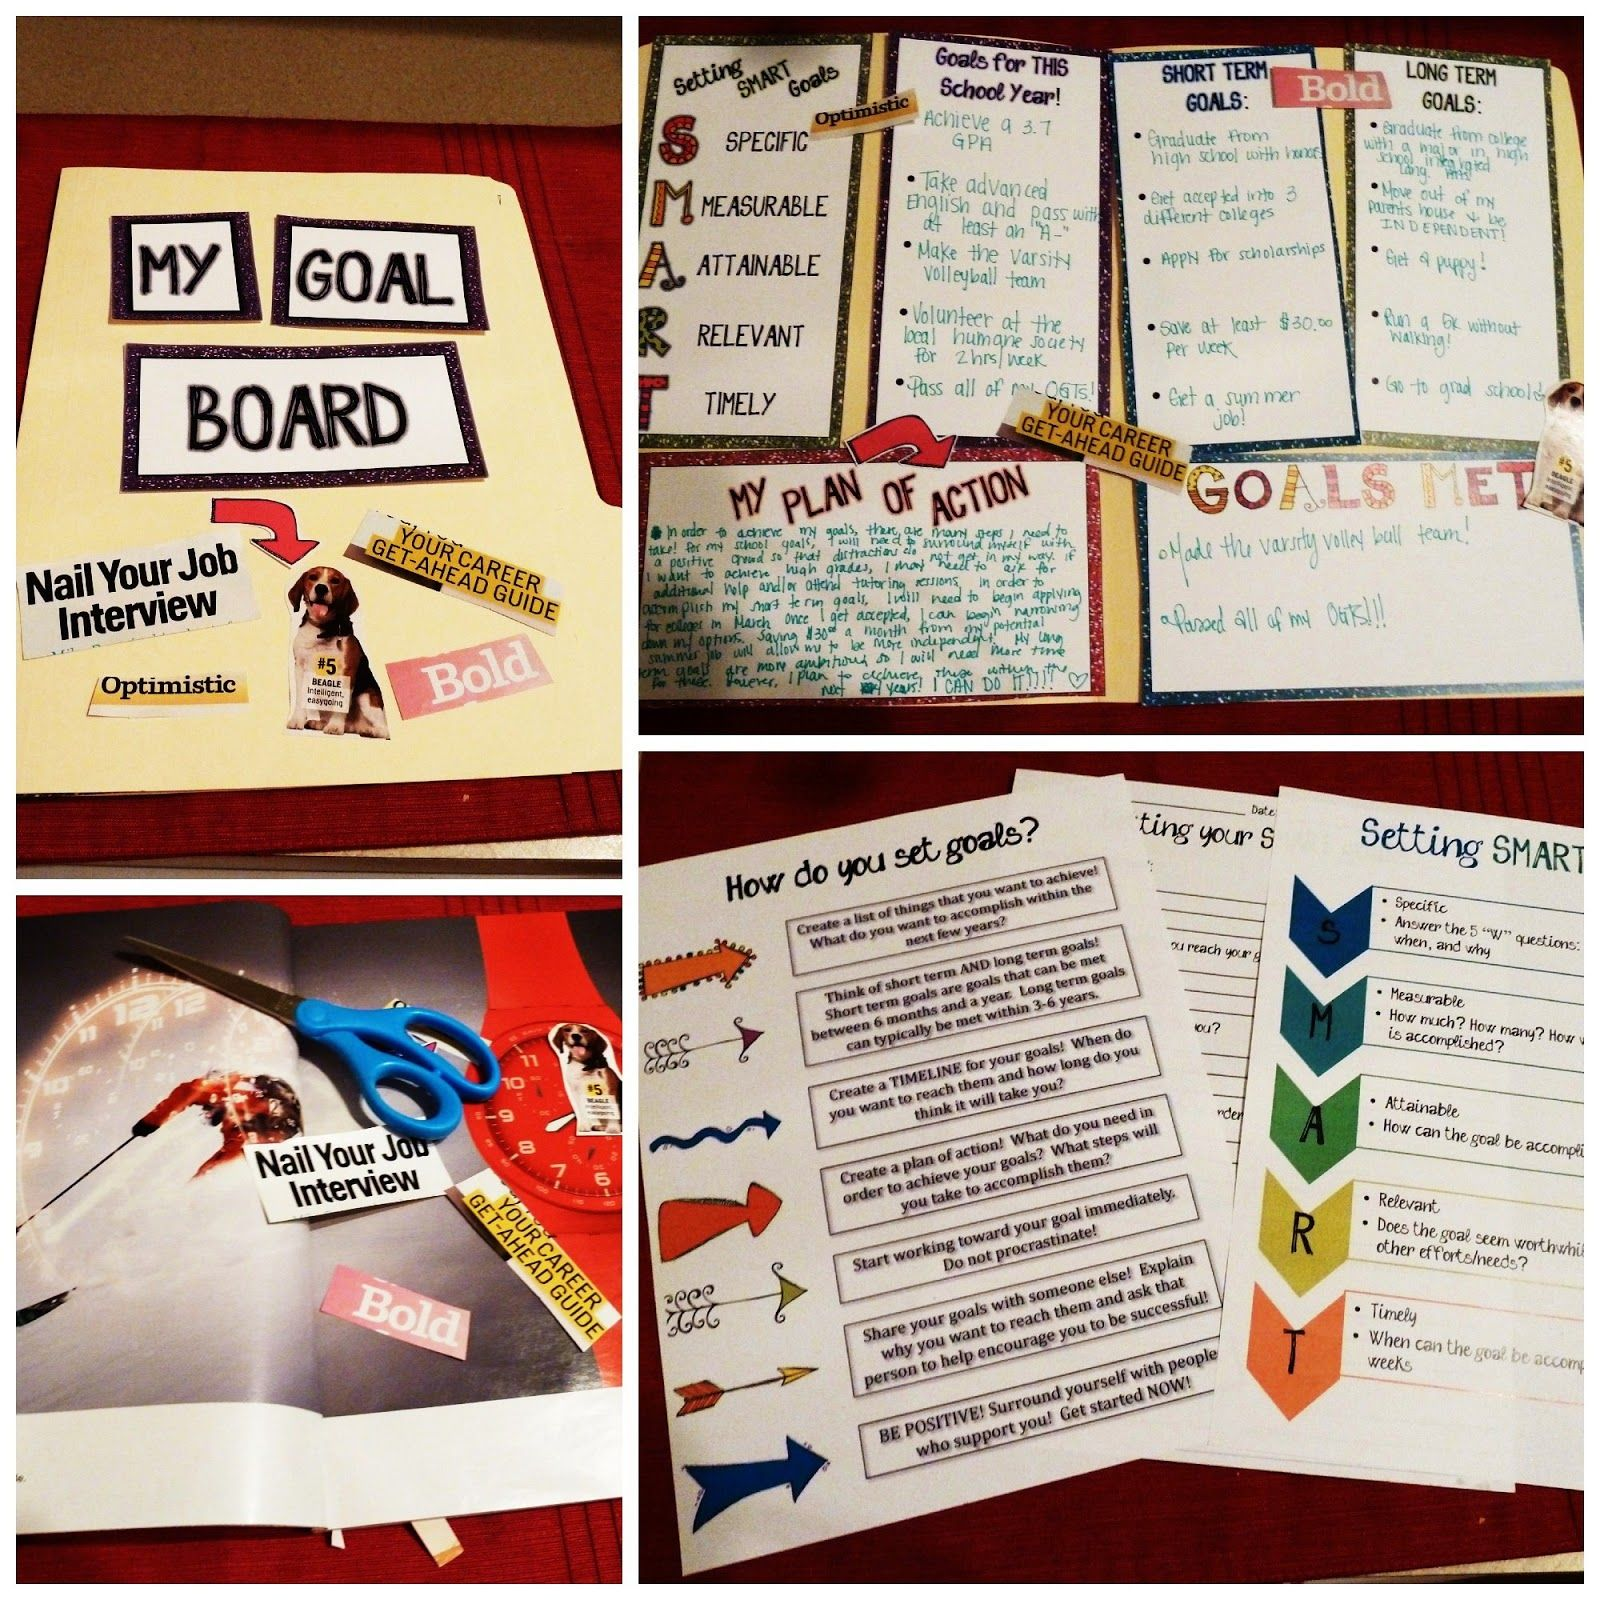 Goal Boards For Teens